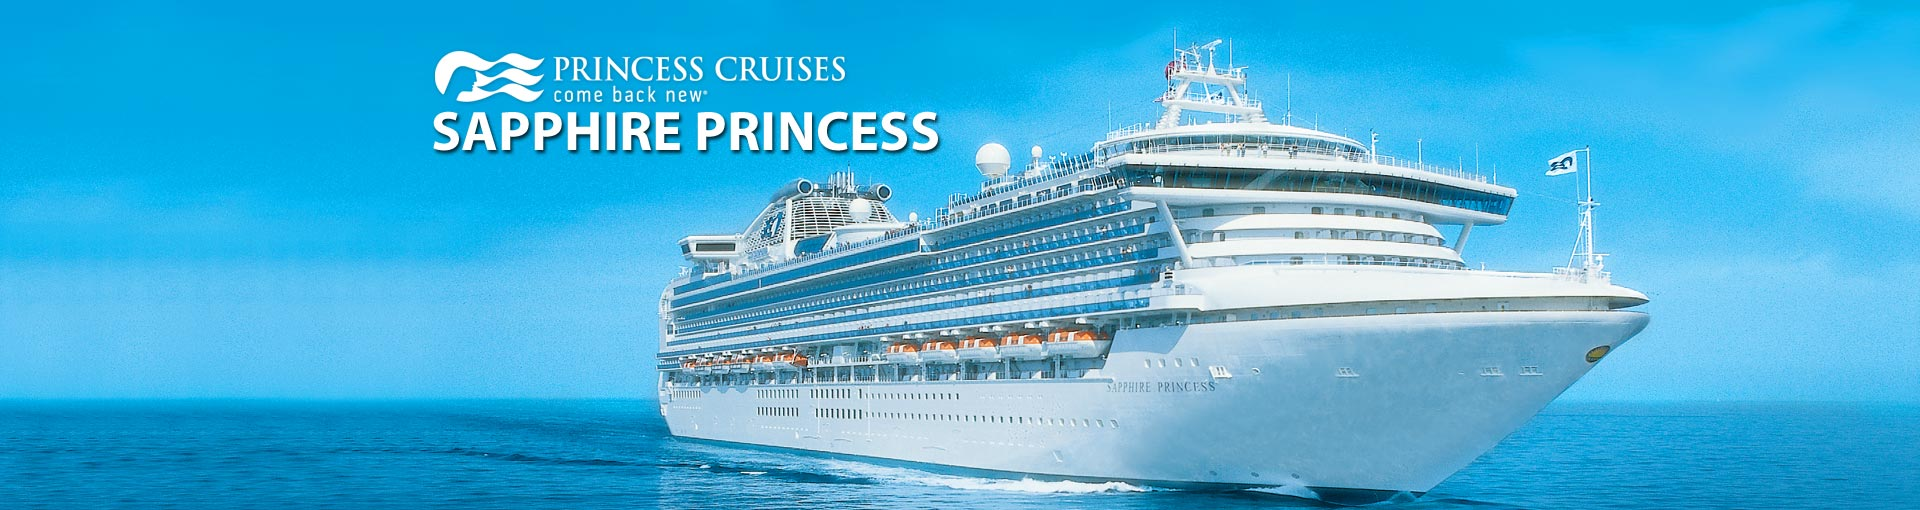 aussenansicht ms sapphire princess cruises hidden ship link